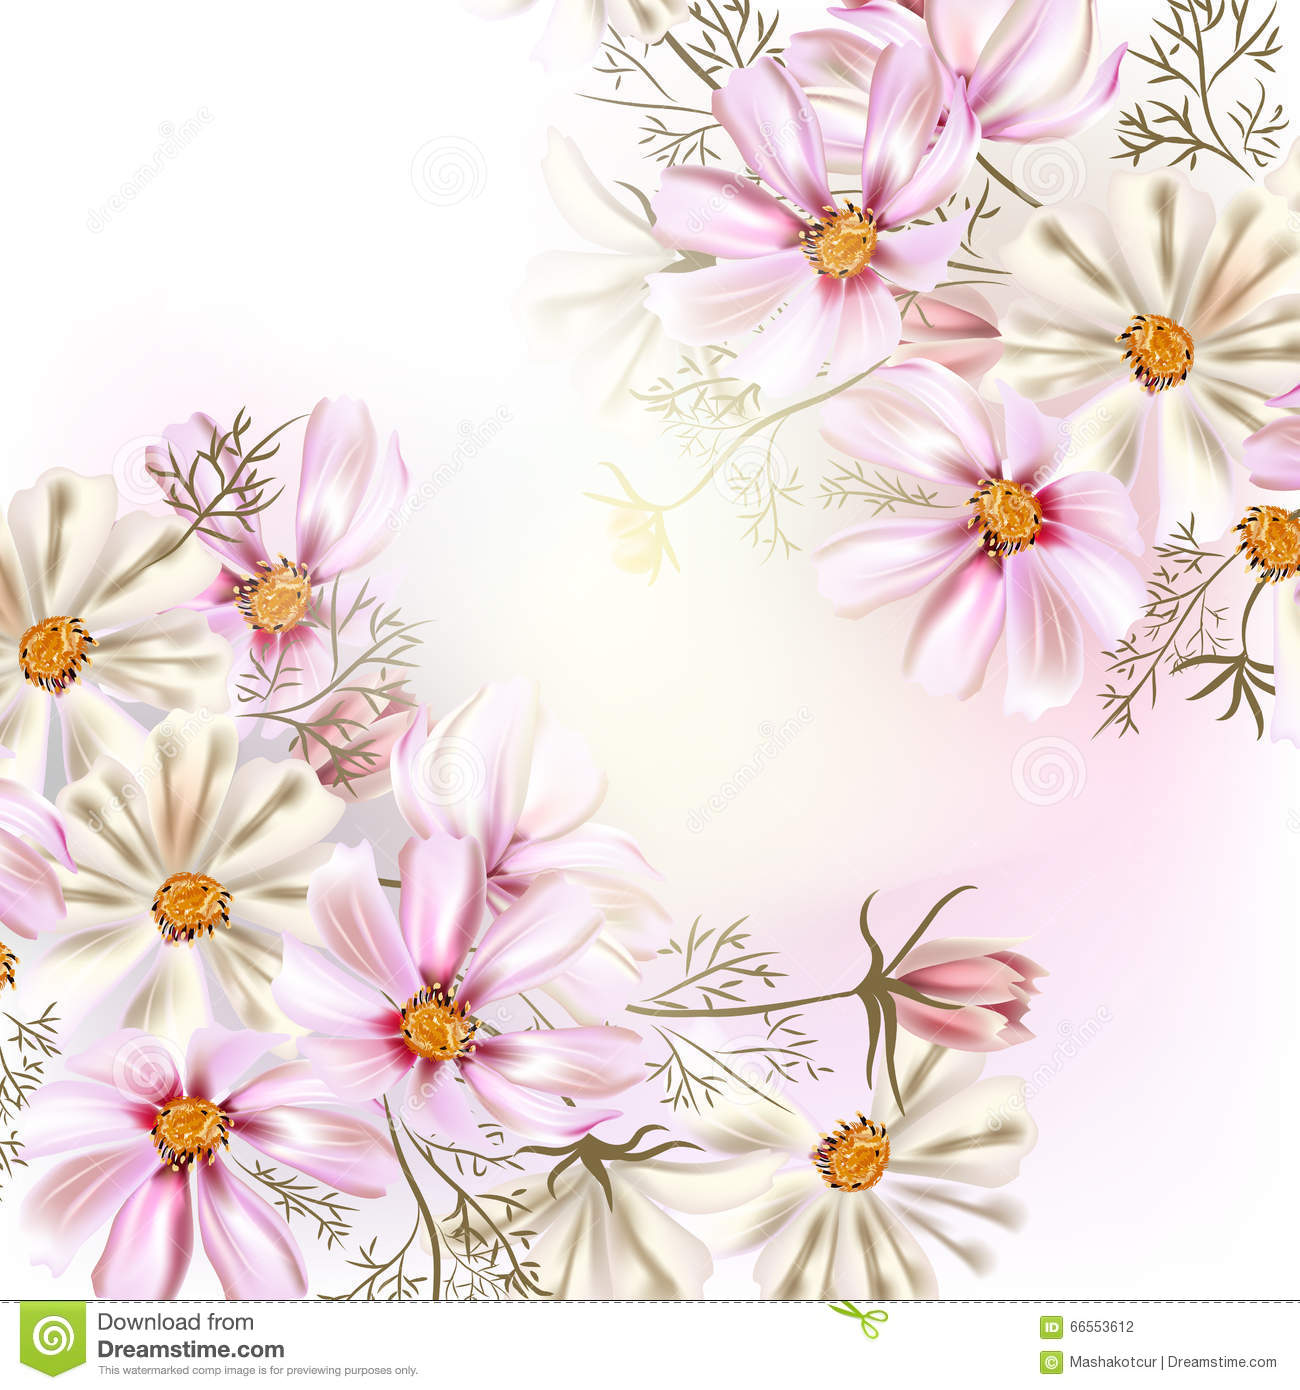 Beautiful Vector Illustration With Field Cosmos Flowers Stock.